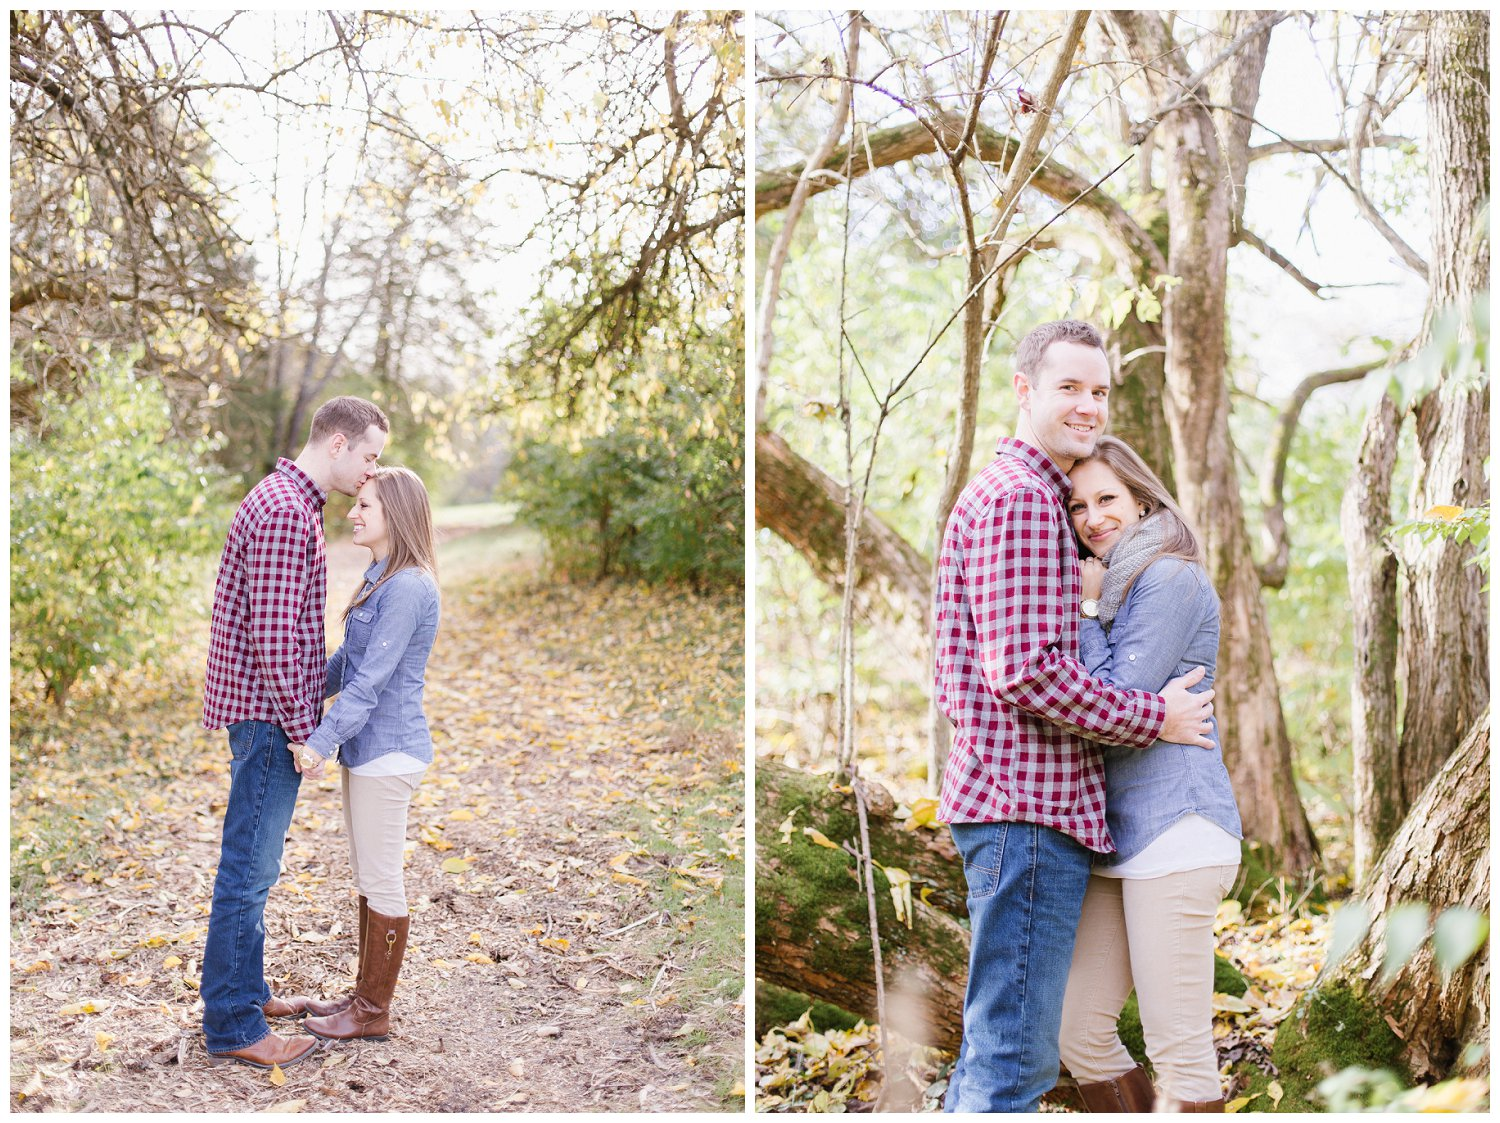 laina-matt-prospect-kentucky-engagement-session_0003.jpg